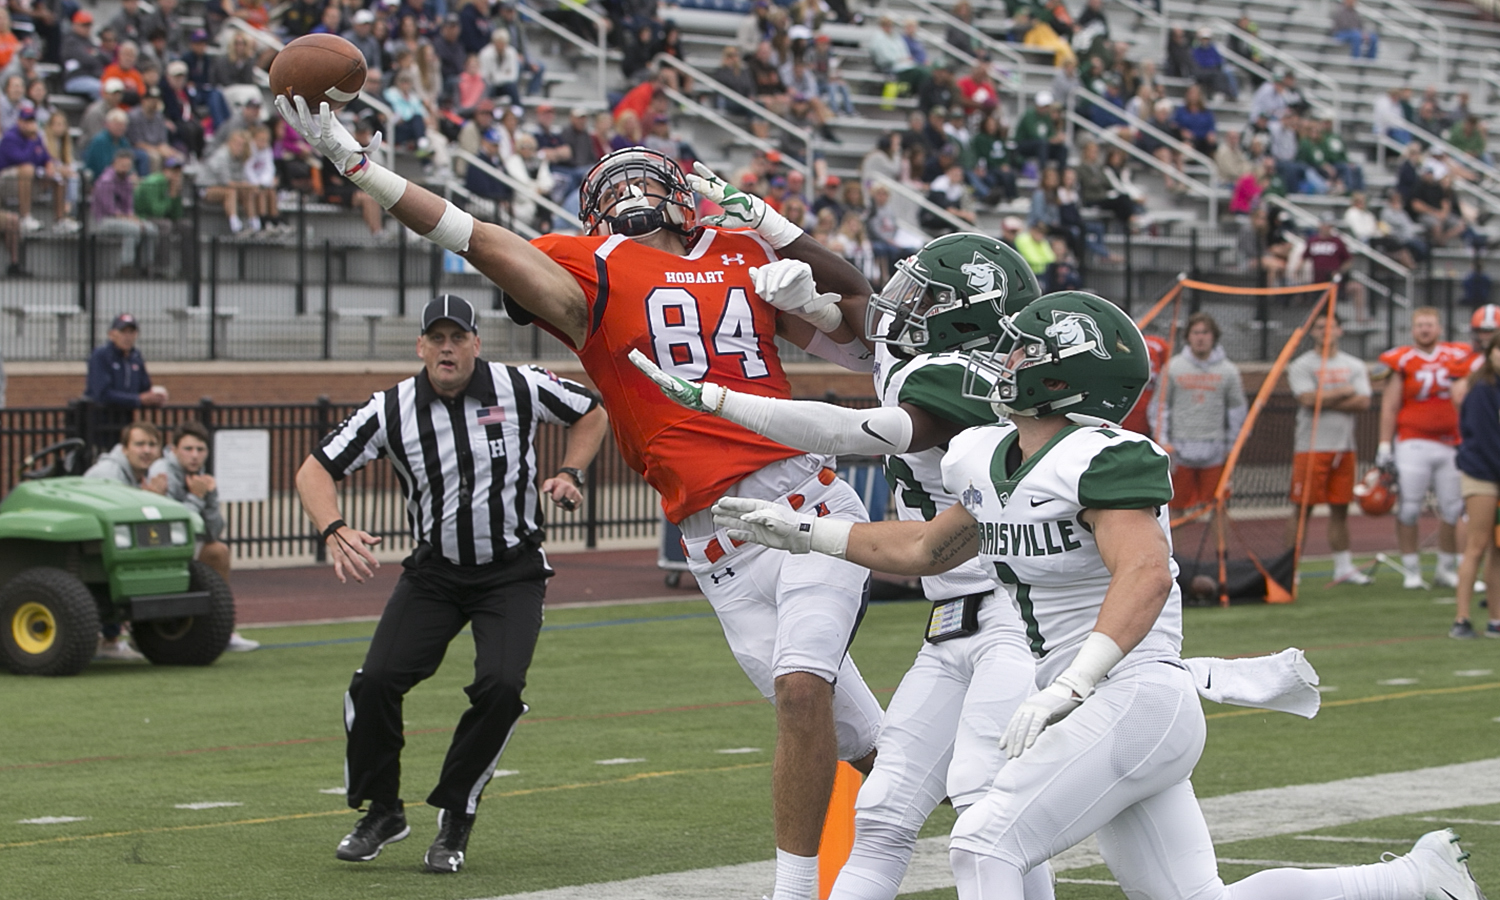 Matthew Woods 'X extends to make the catch during Hobart's 62-24 win over SUNY Morrosville on Saturday.